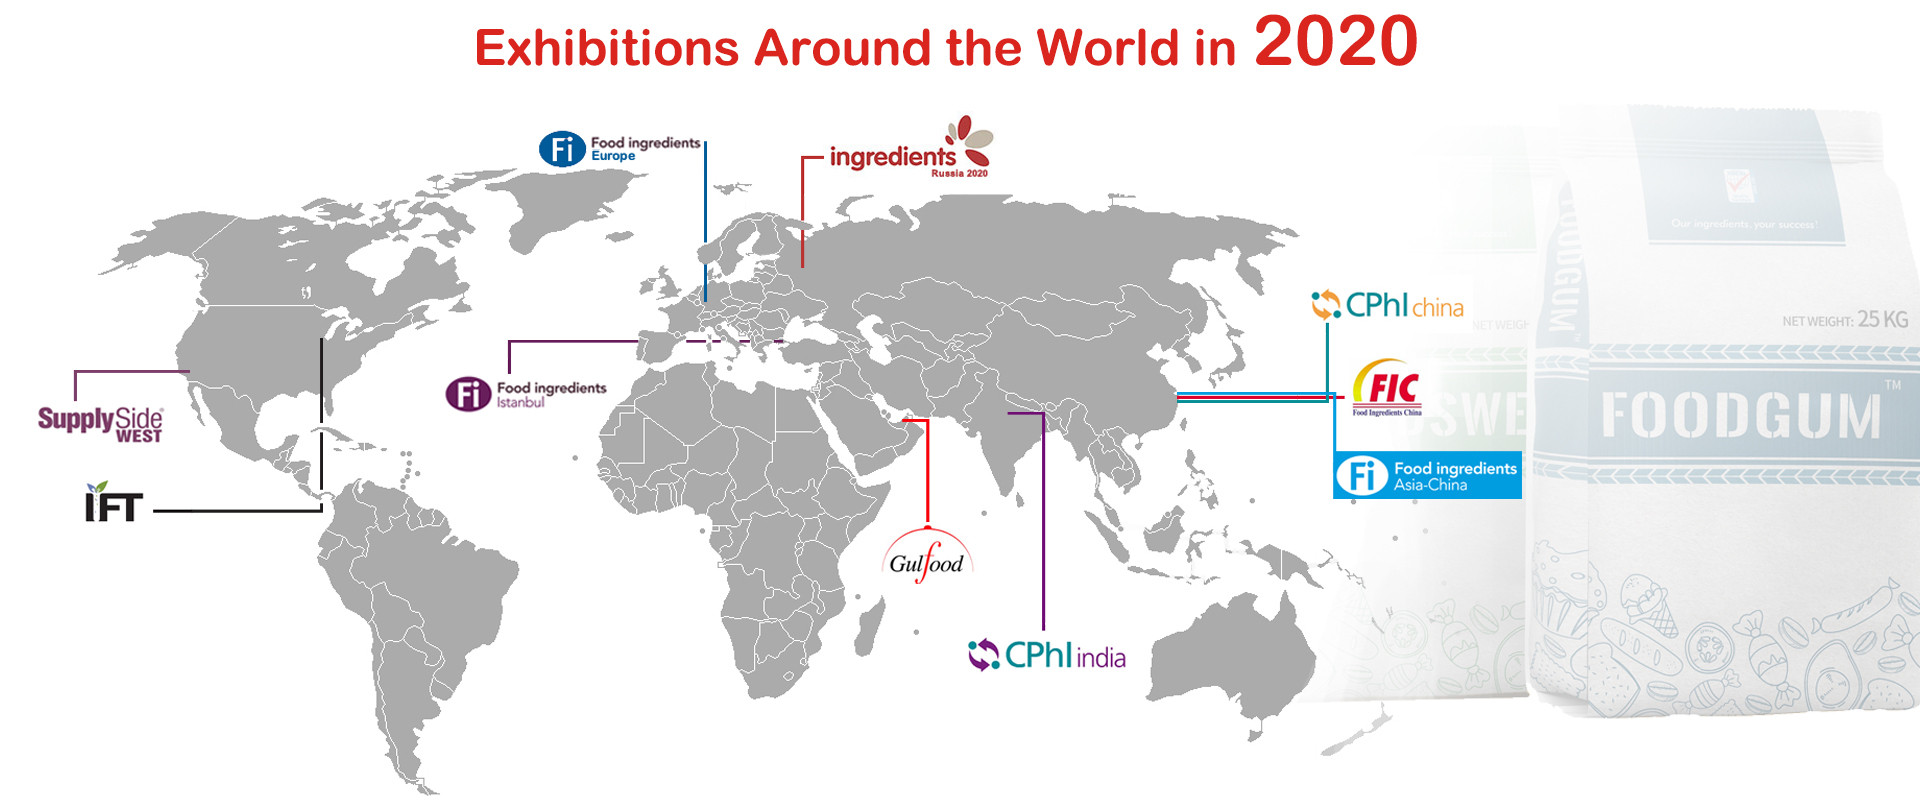 Foodchem World Exhibition 2020